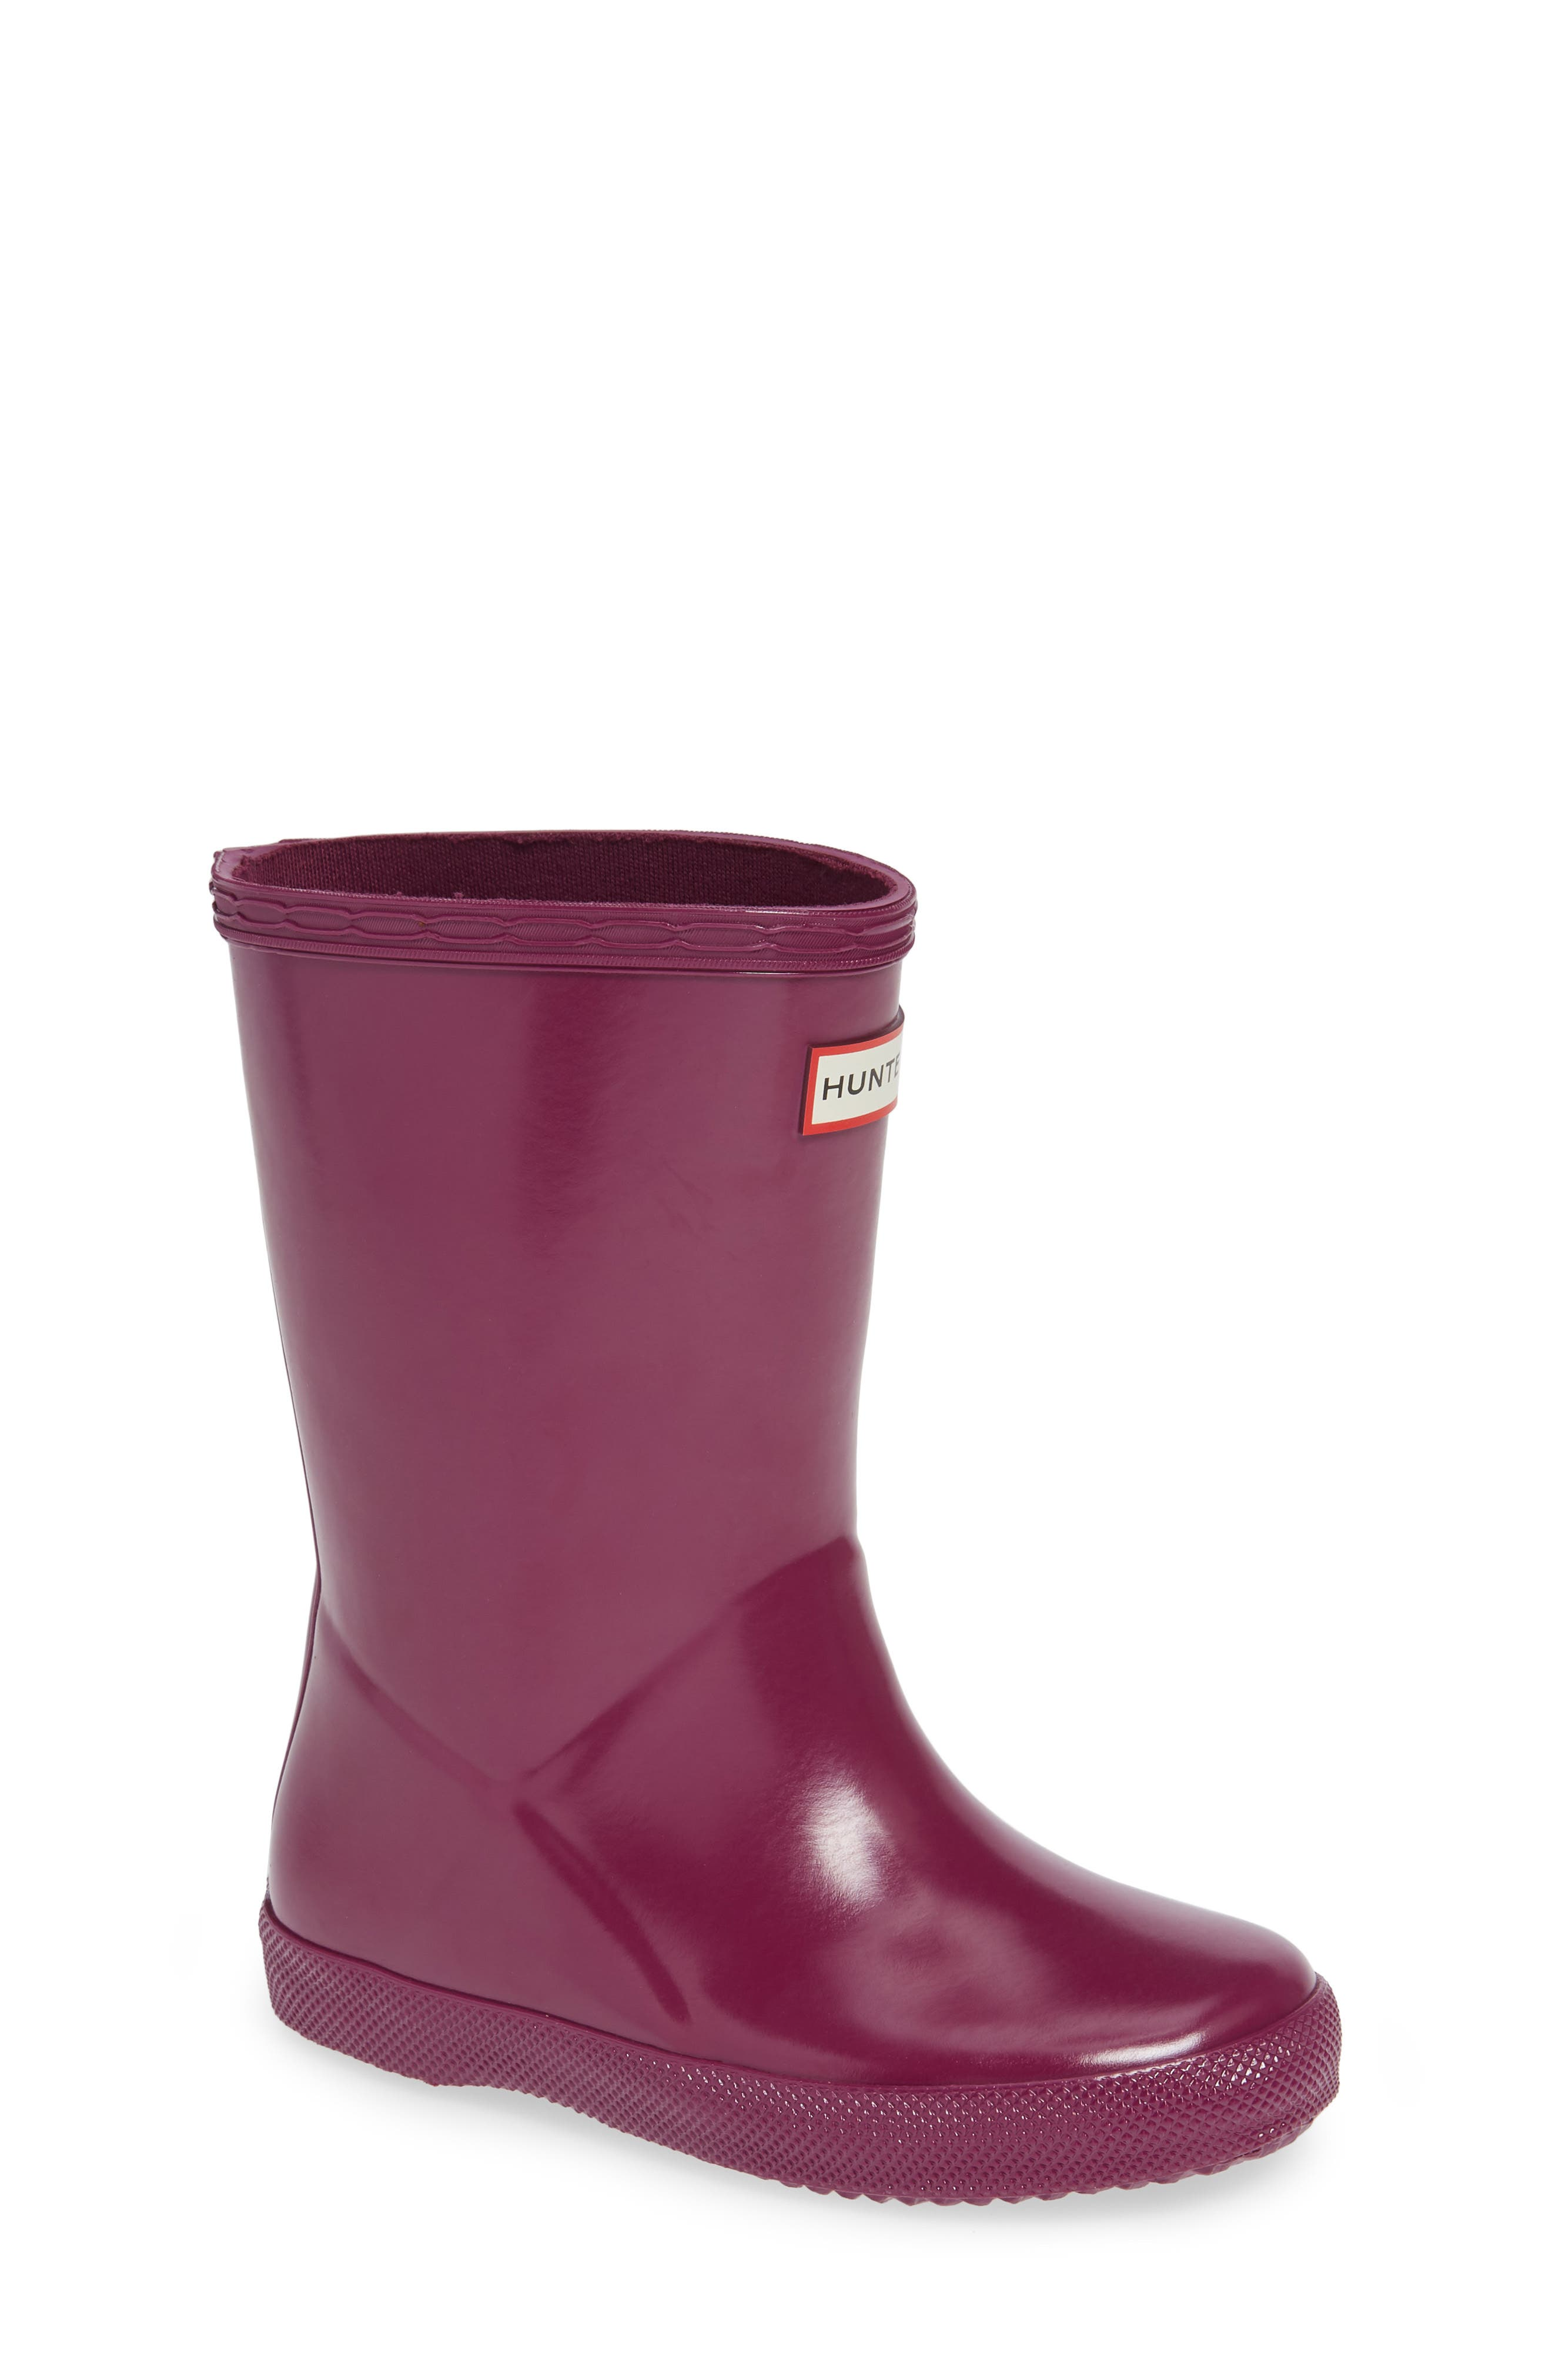 HUNTER 'First Gloss' Rain Boot, Main, color, VIOLET